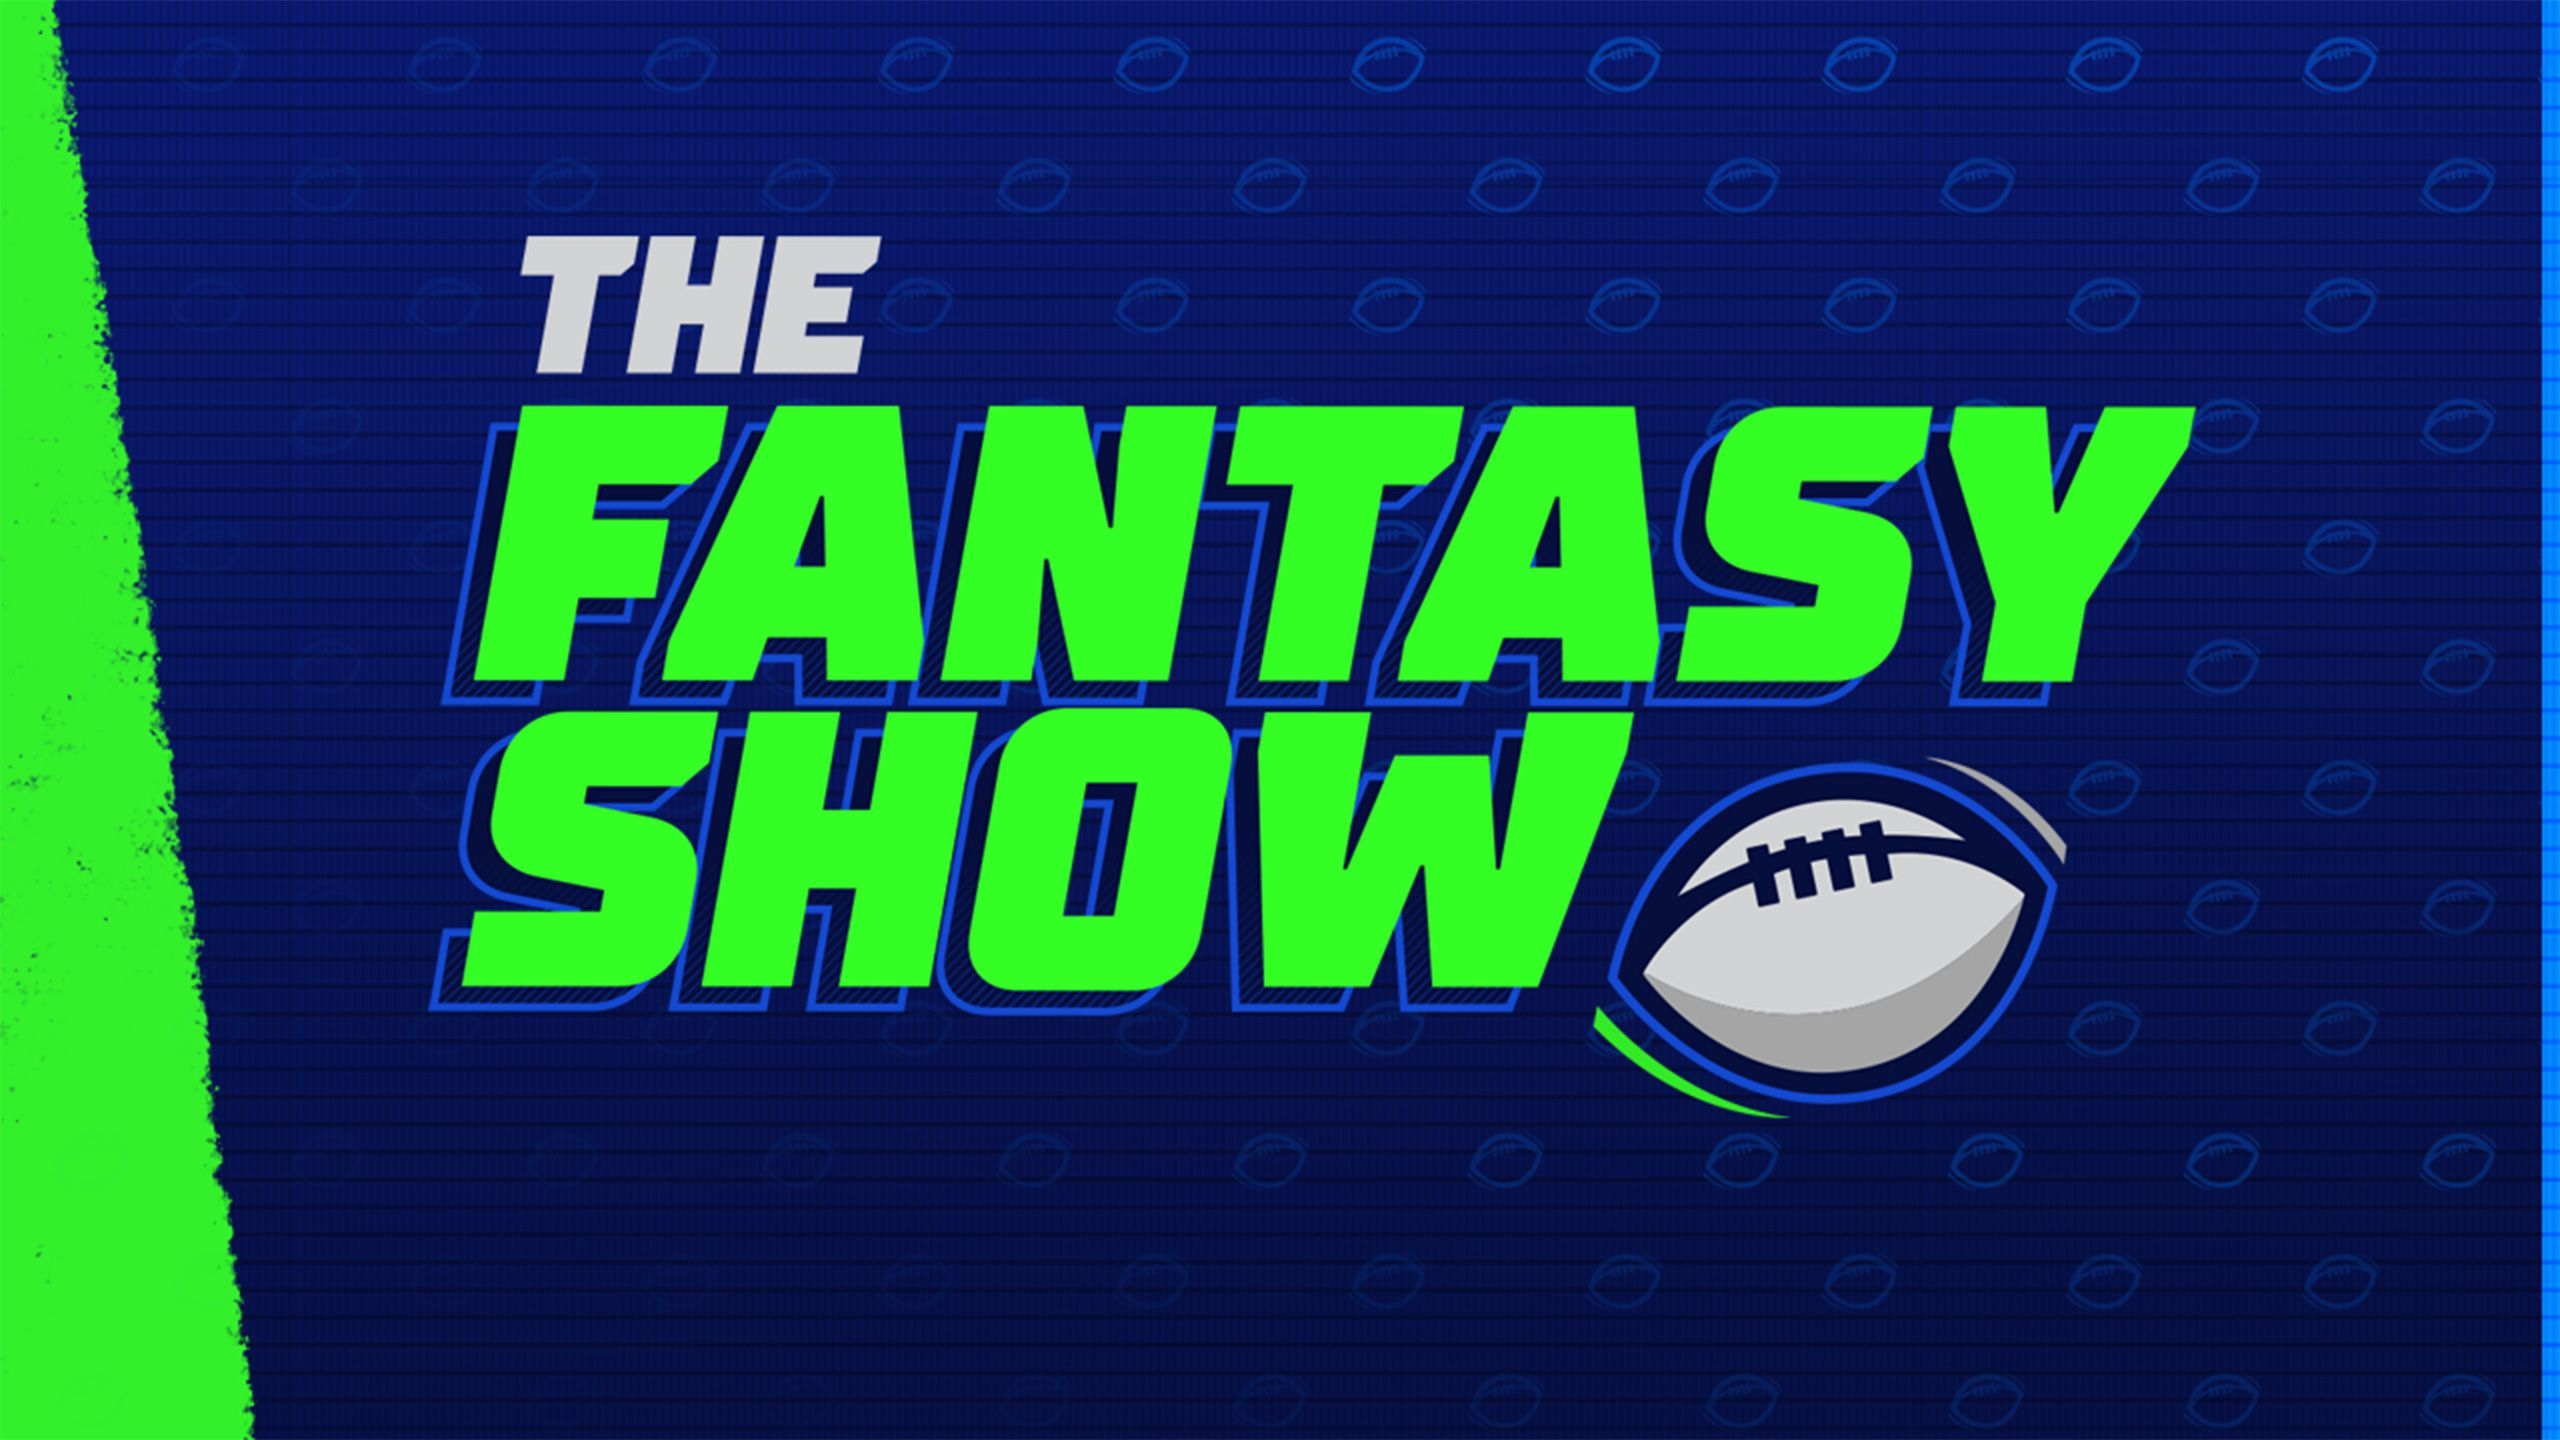 Fri, 11/17 - The Fantasy Show presented by E*Trade